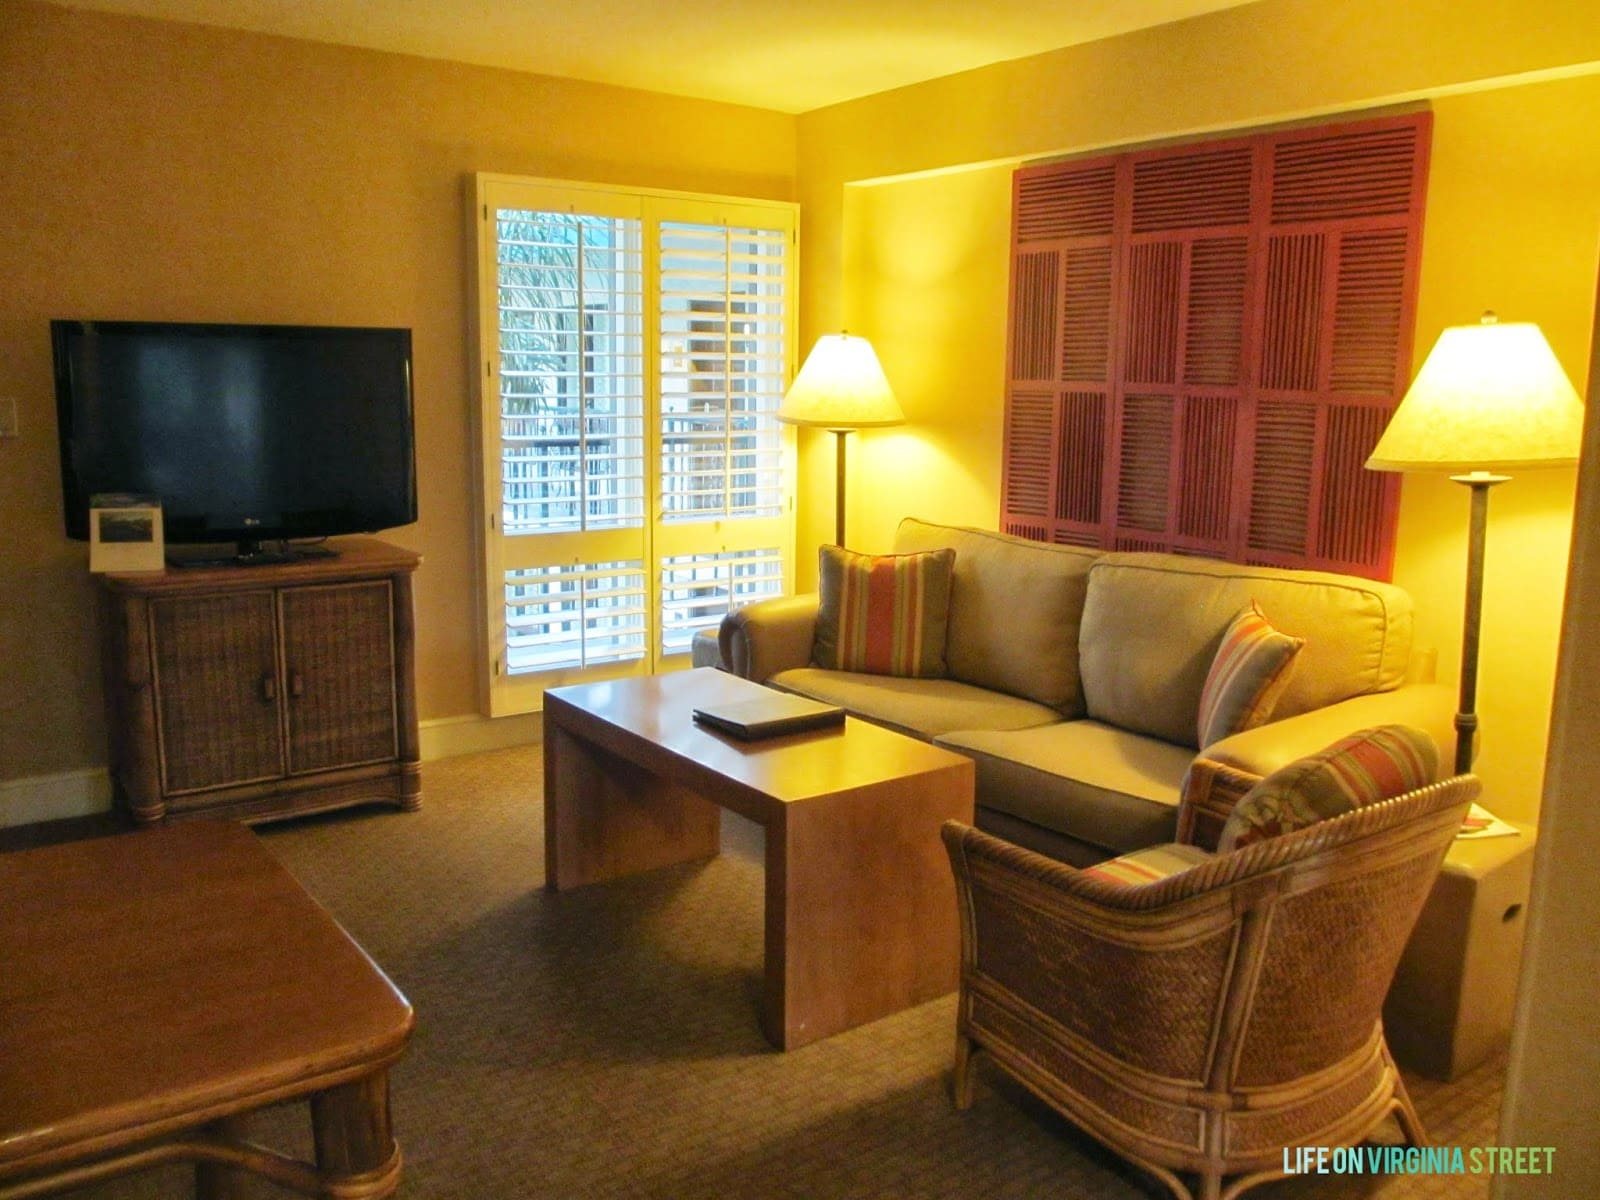 A small sitting room inside the hotel room.